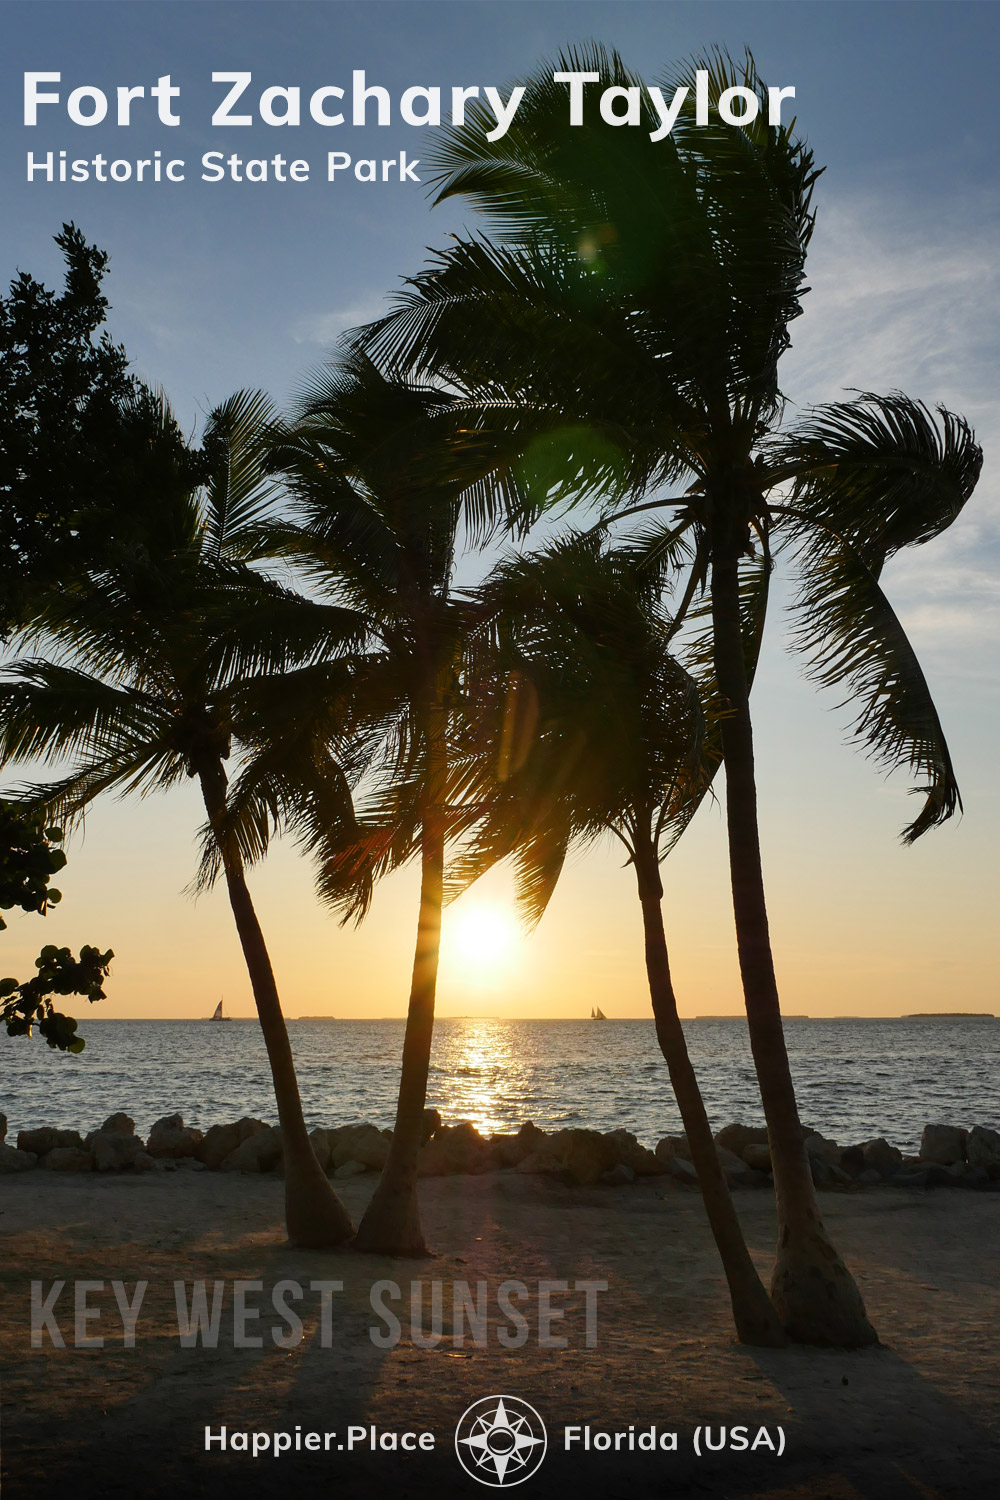 Key West Sunset through wind-swept Palm Trees at Fort Zachary Taylor Historic State Park, Happier Place, Florida